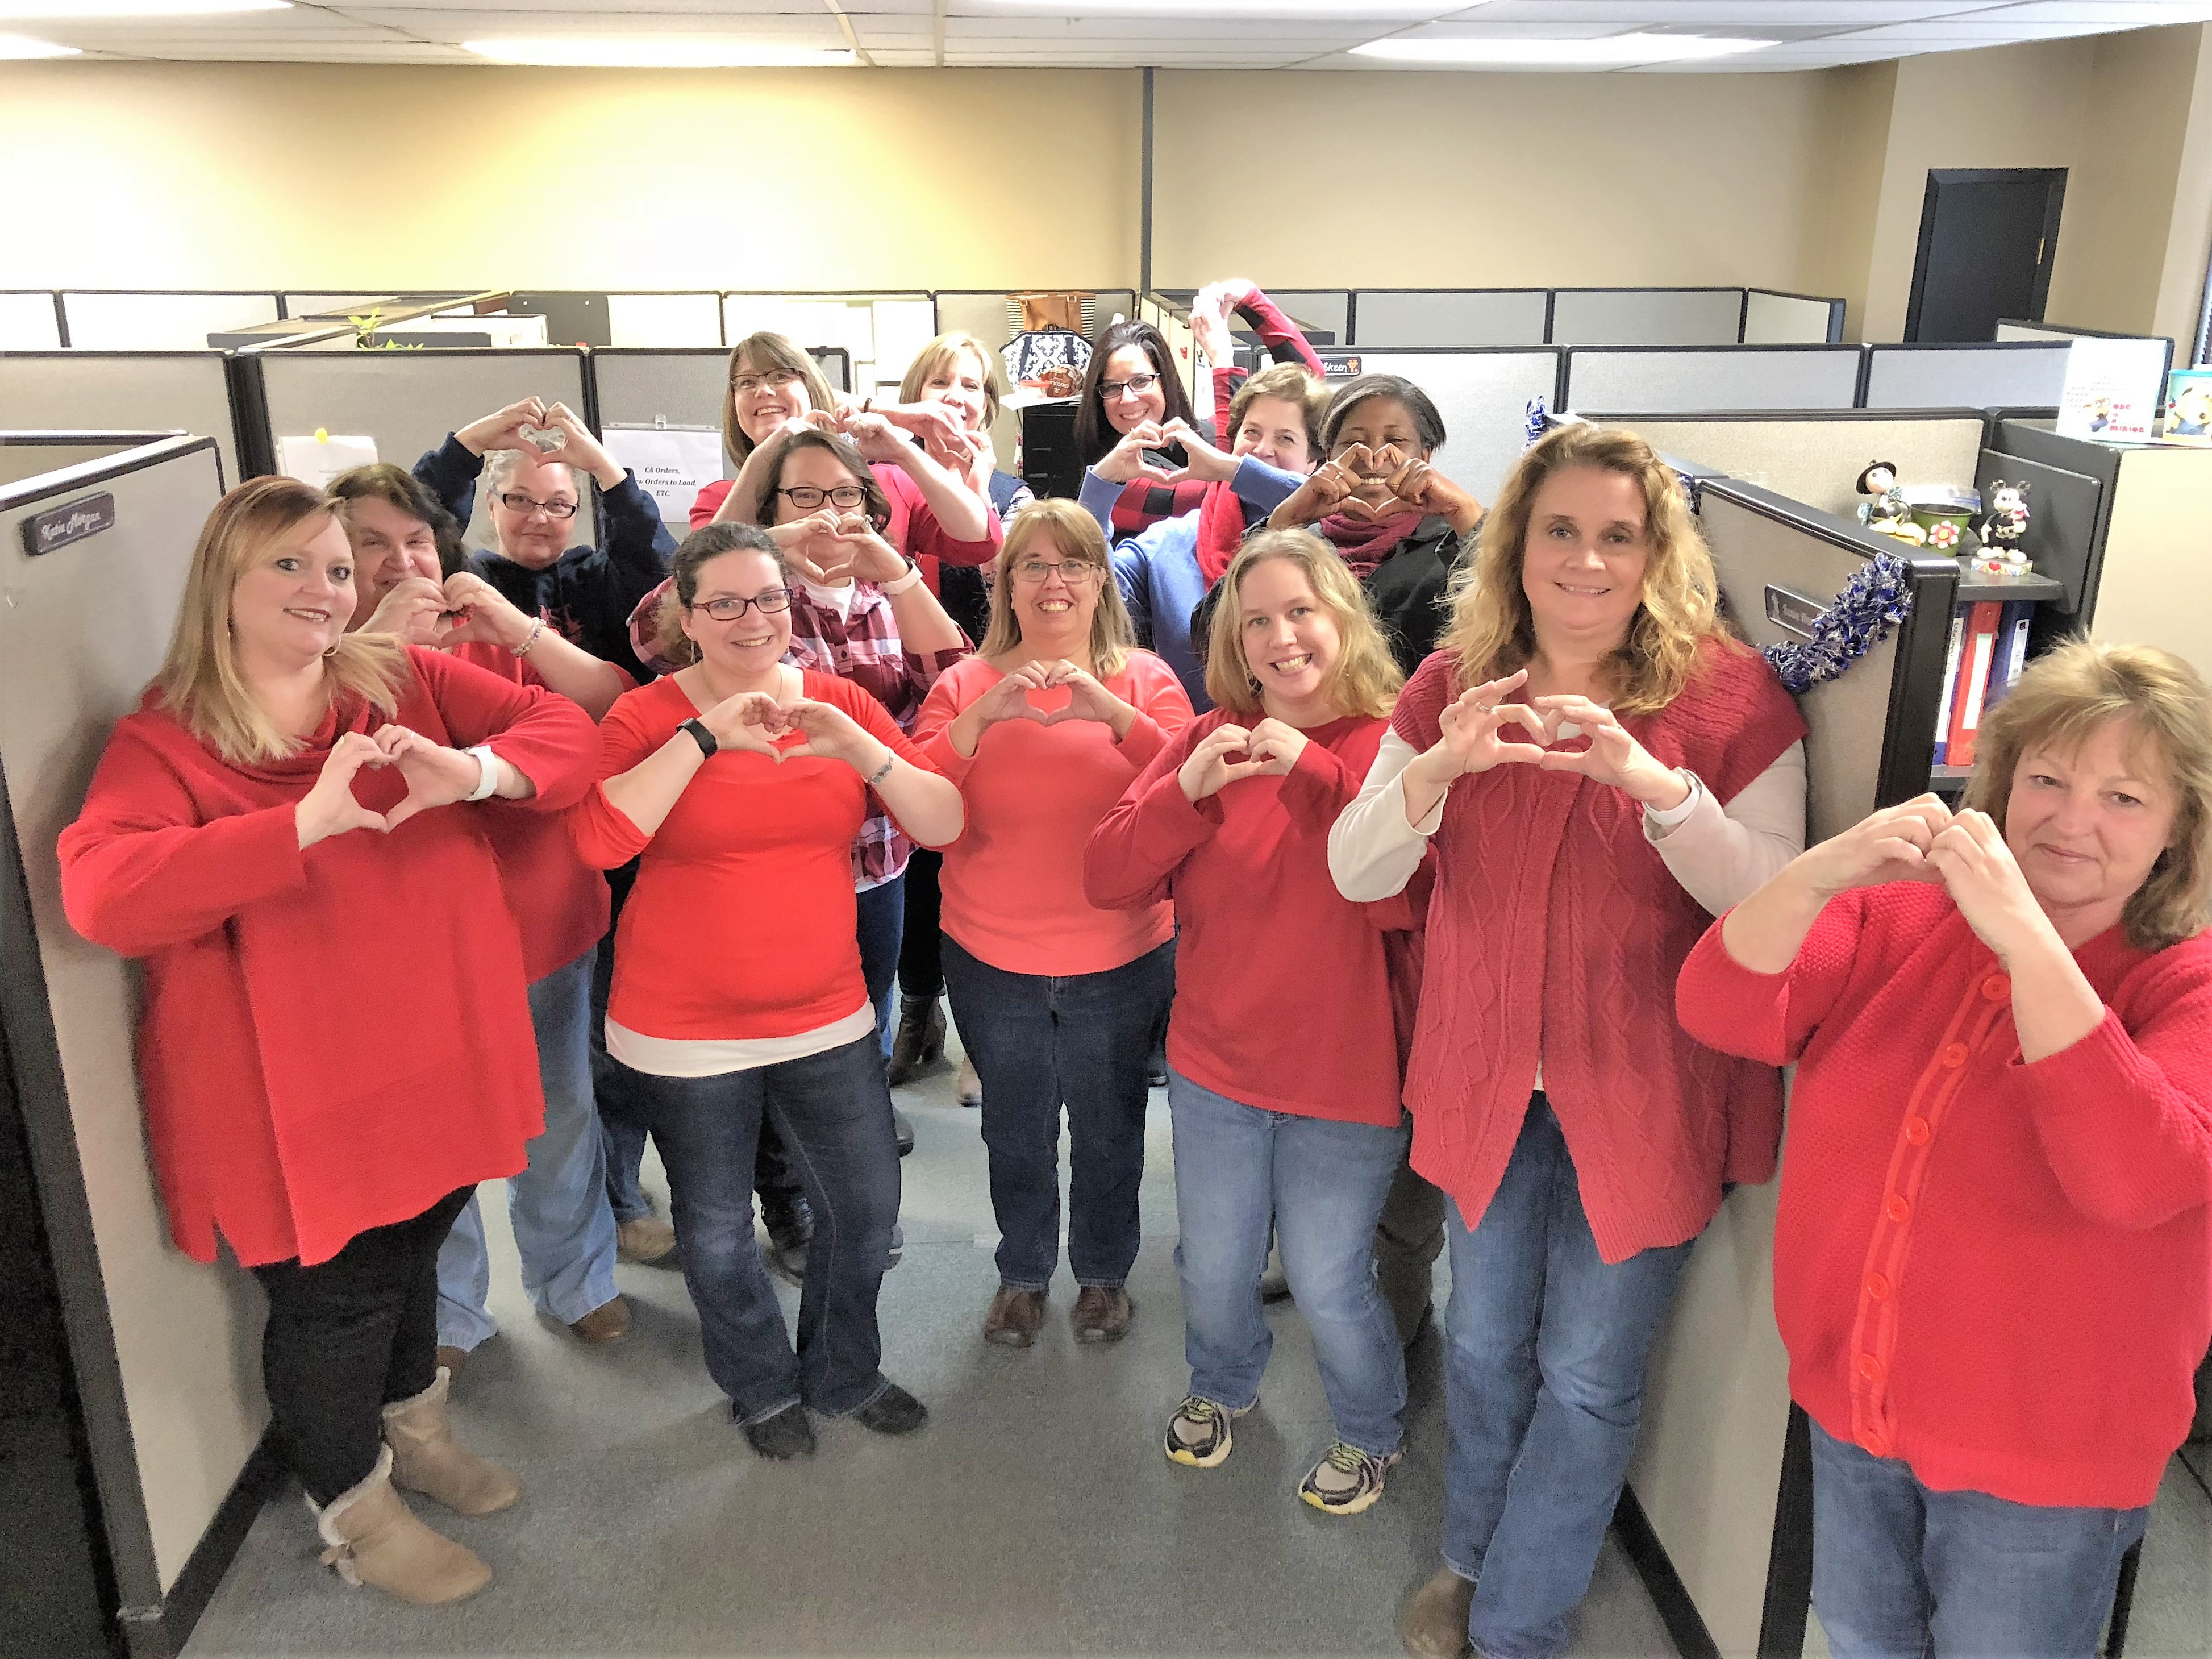 Employees at the Dandridge office wear red to raise awareness for heart disease prevention.